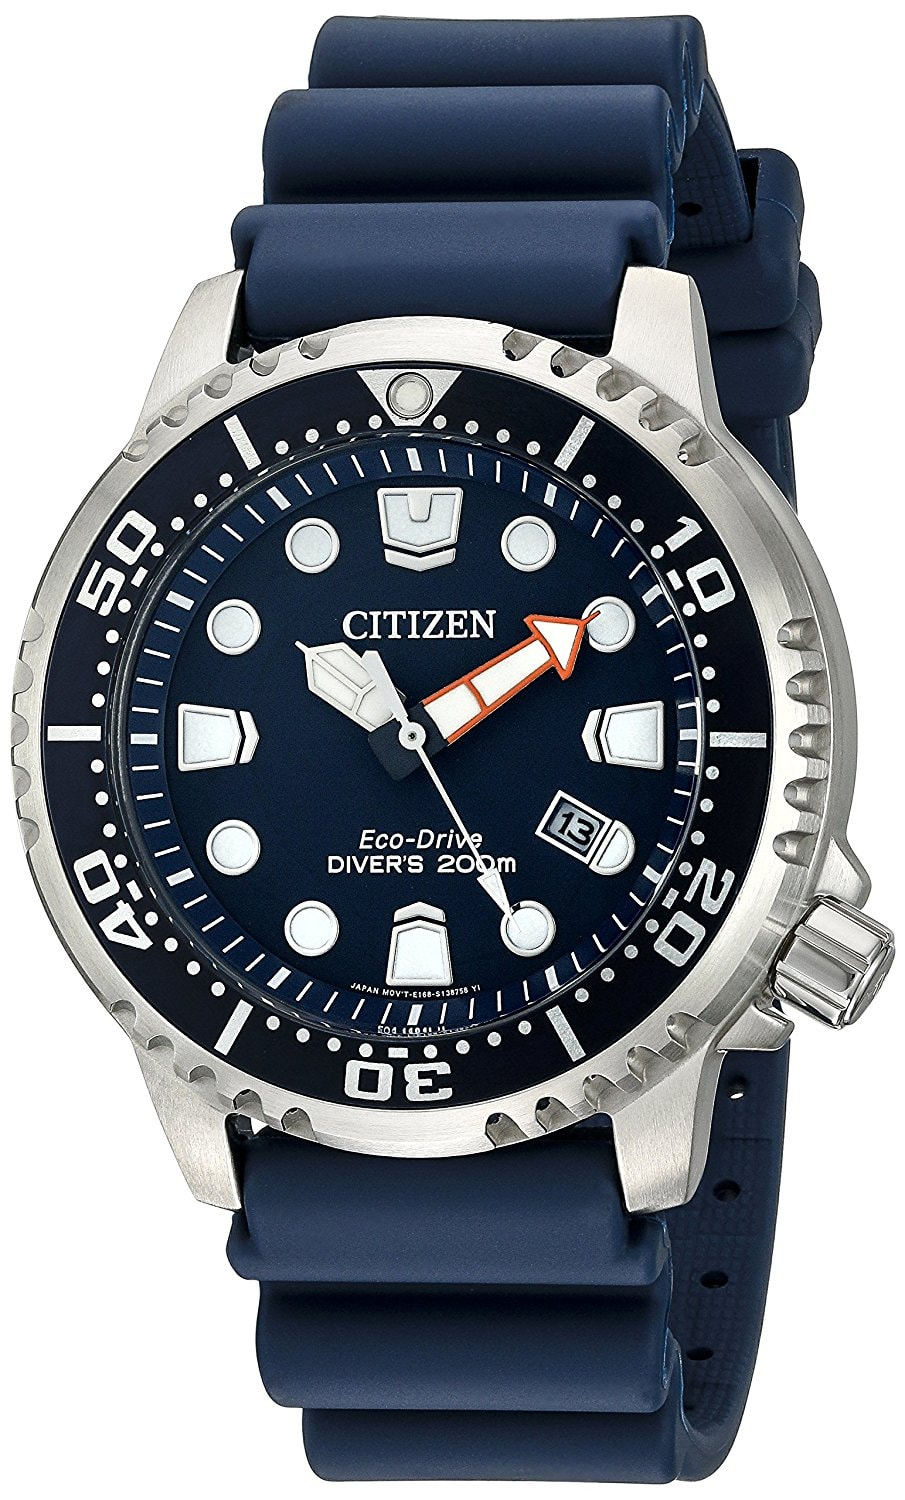 Citizen Men's Eco-Drive Promaster Diver Watch With Date, BN0151-09L $119.97